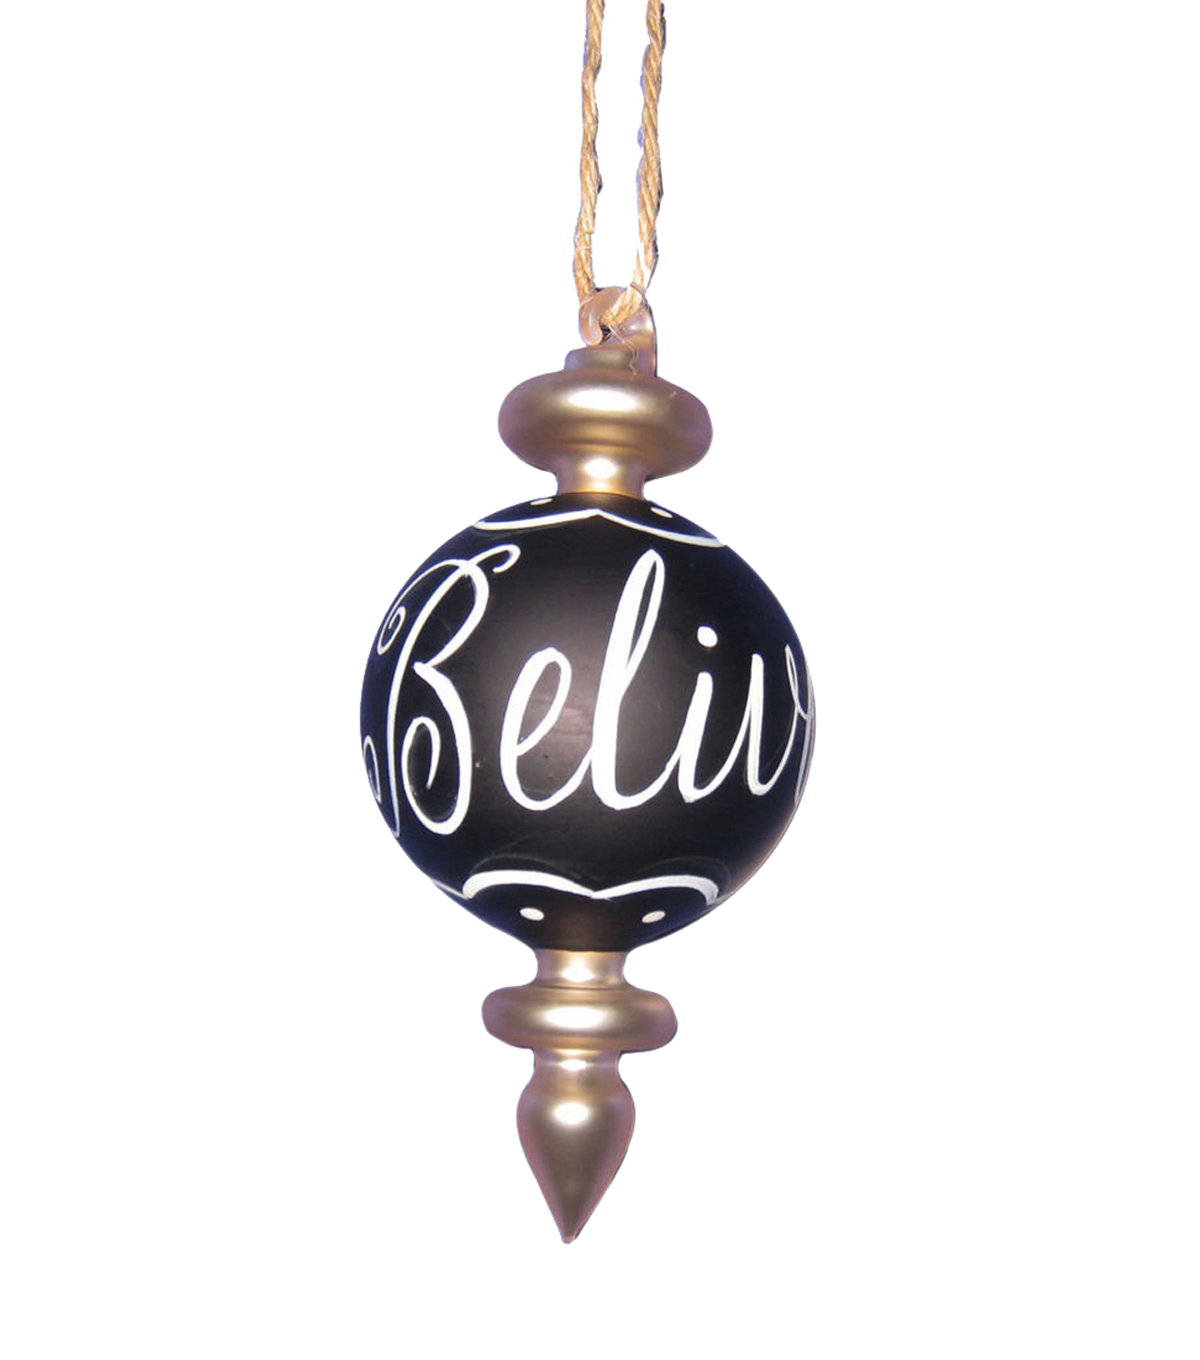 Maker\u0027s Holiday Believe Finial Ornament